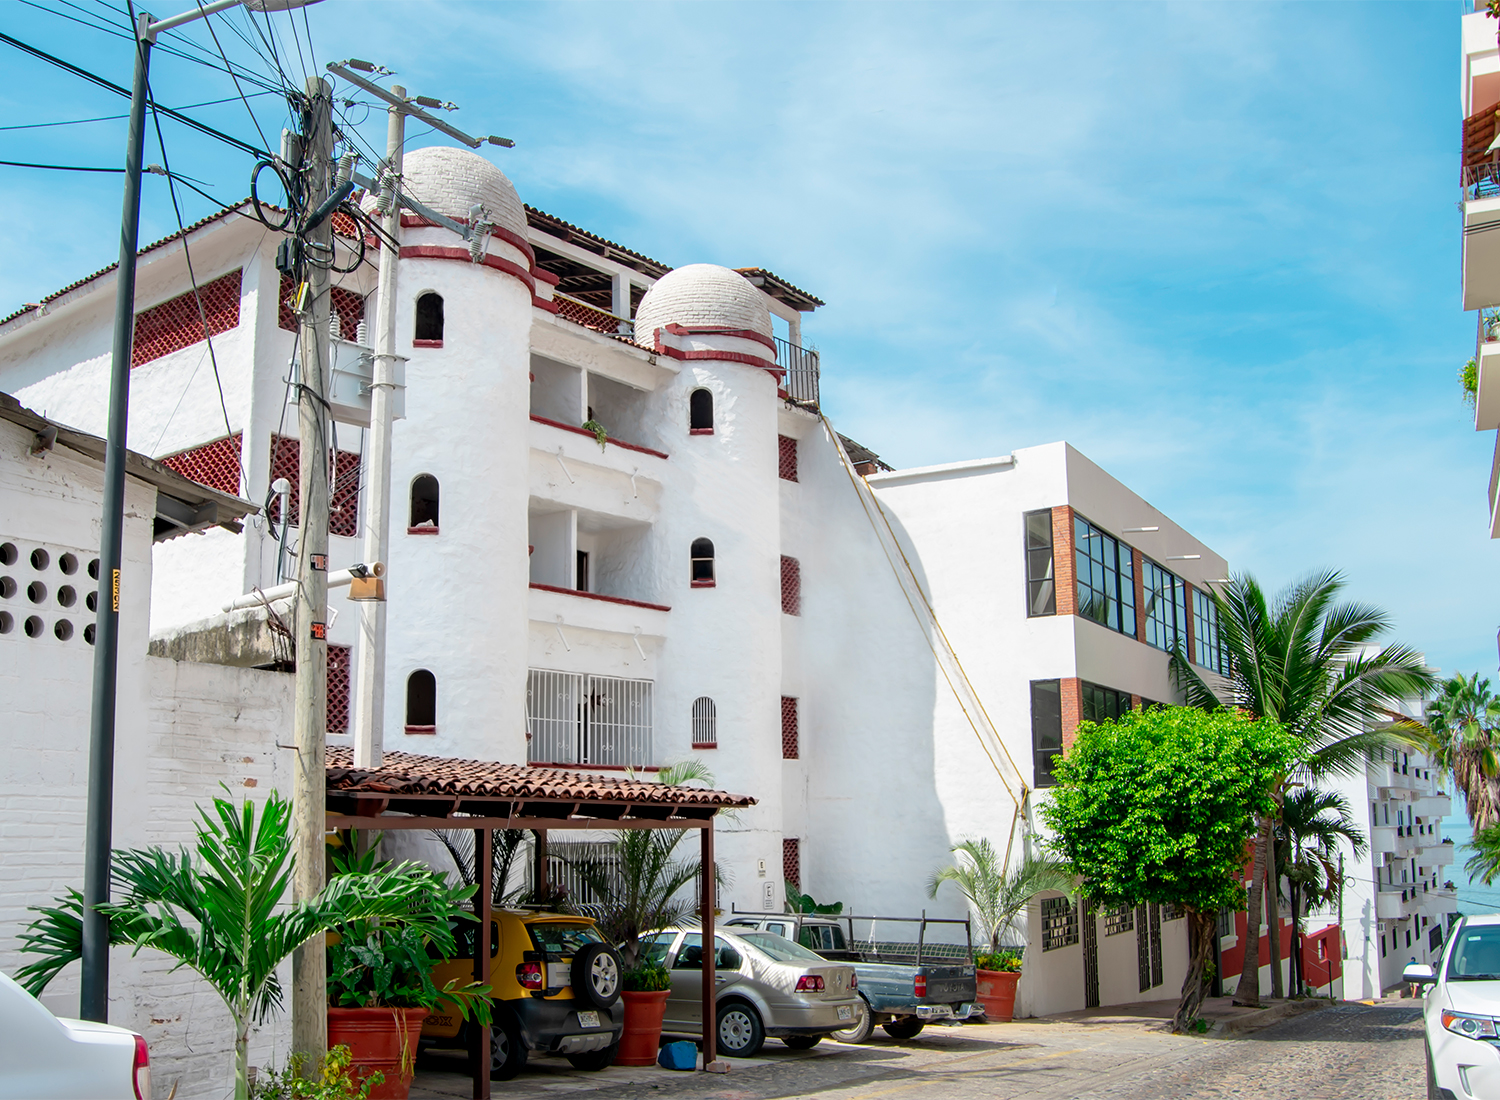 Hotel Hacienda Vallarta Suites - LGBTQ Friendly